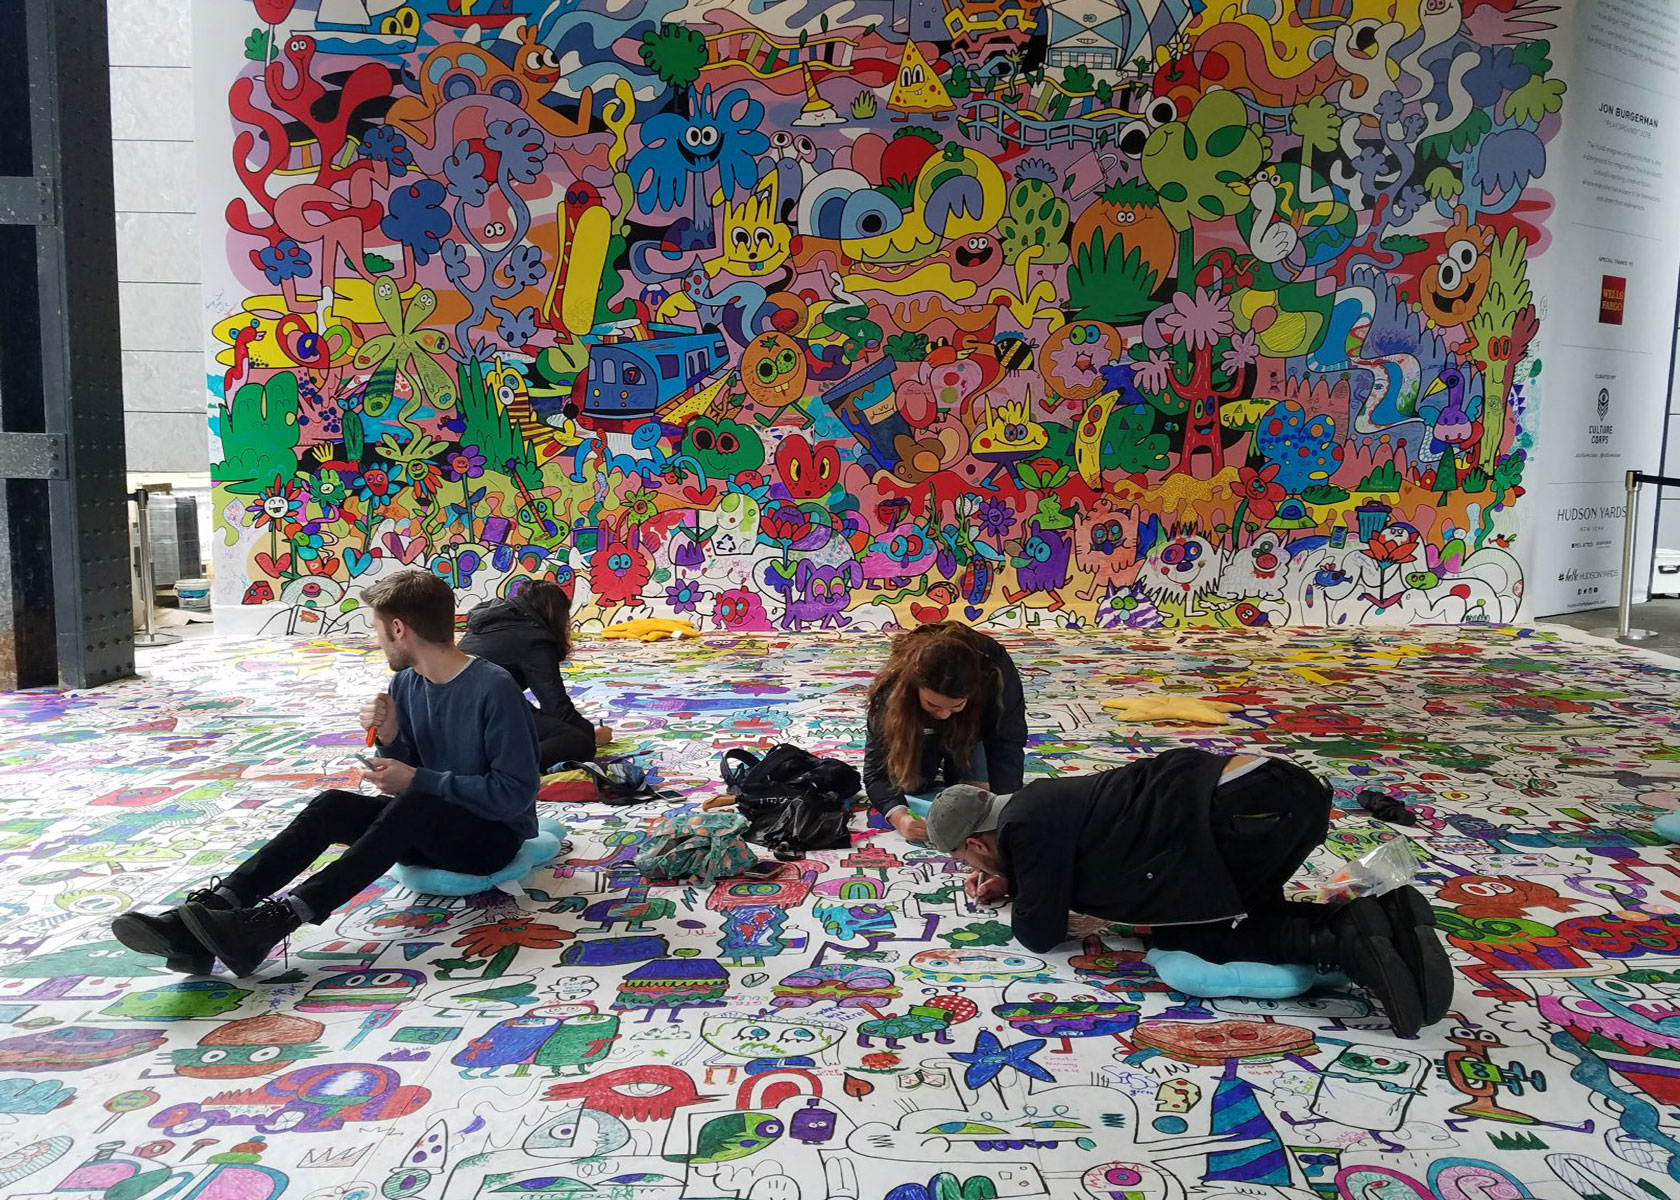 People coloring in a Burgerworld mural during an interactive art exhibit at Hudson Yards in Manhattan